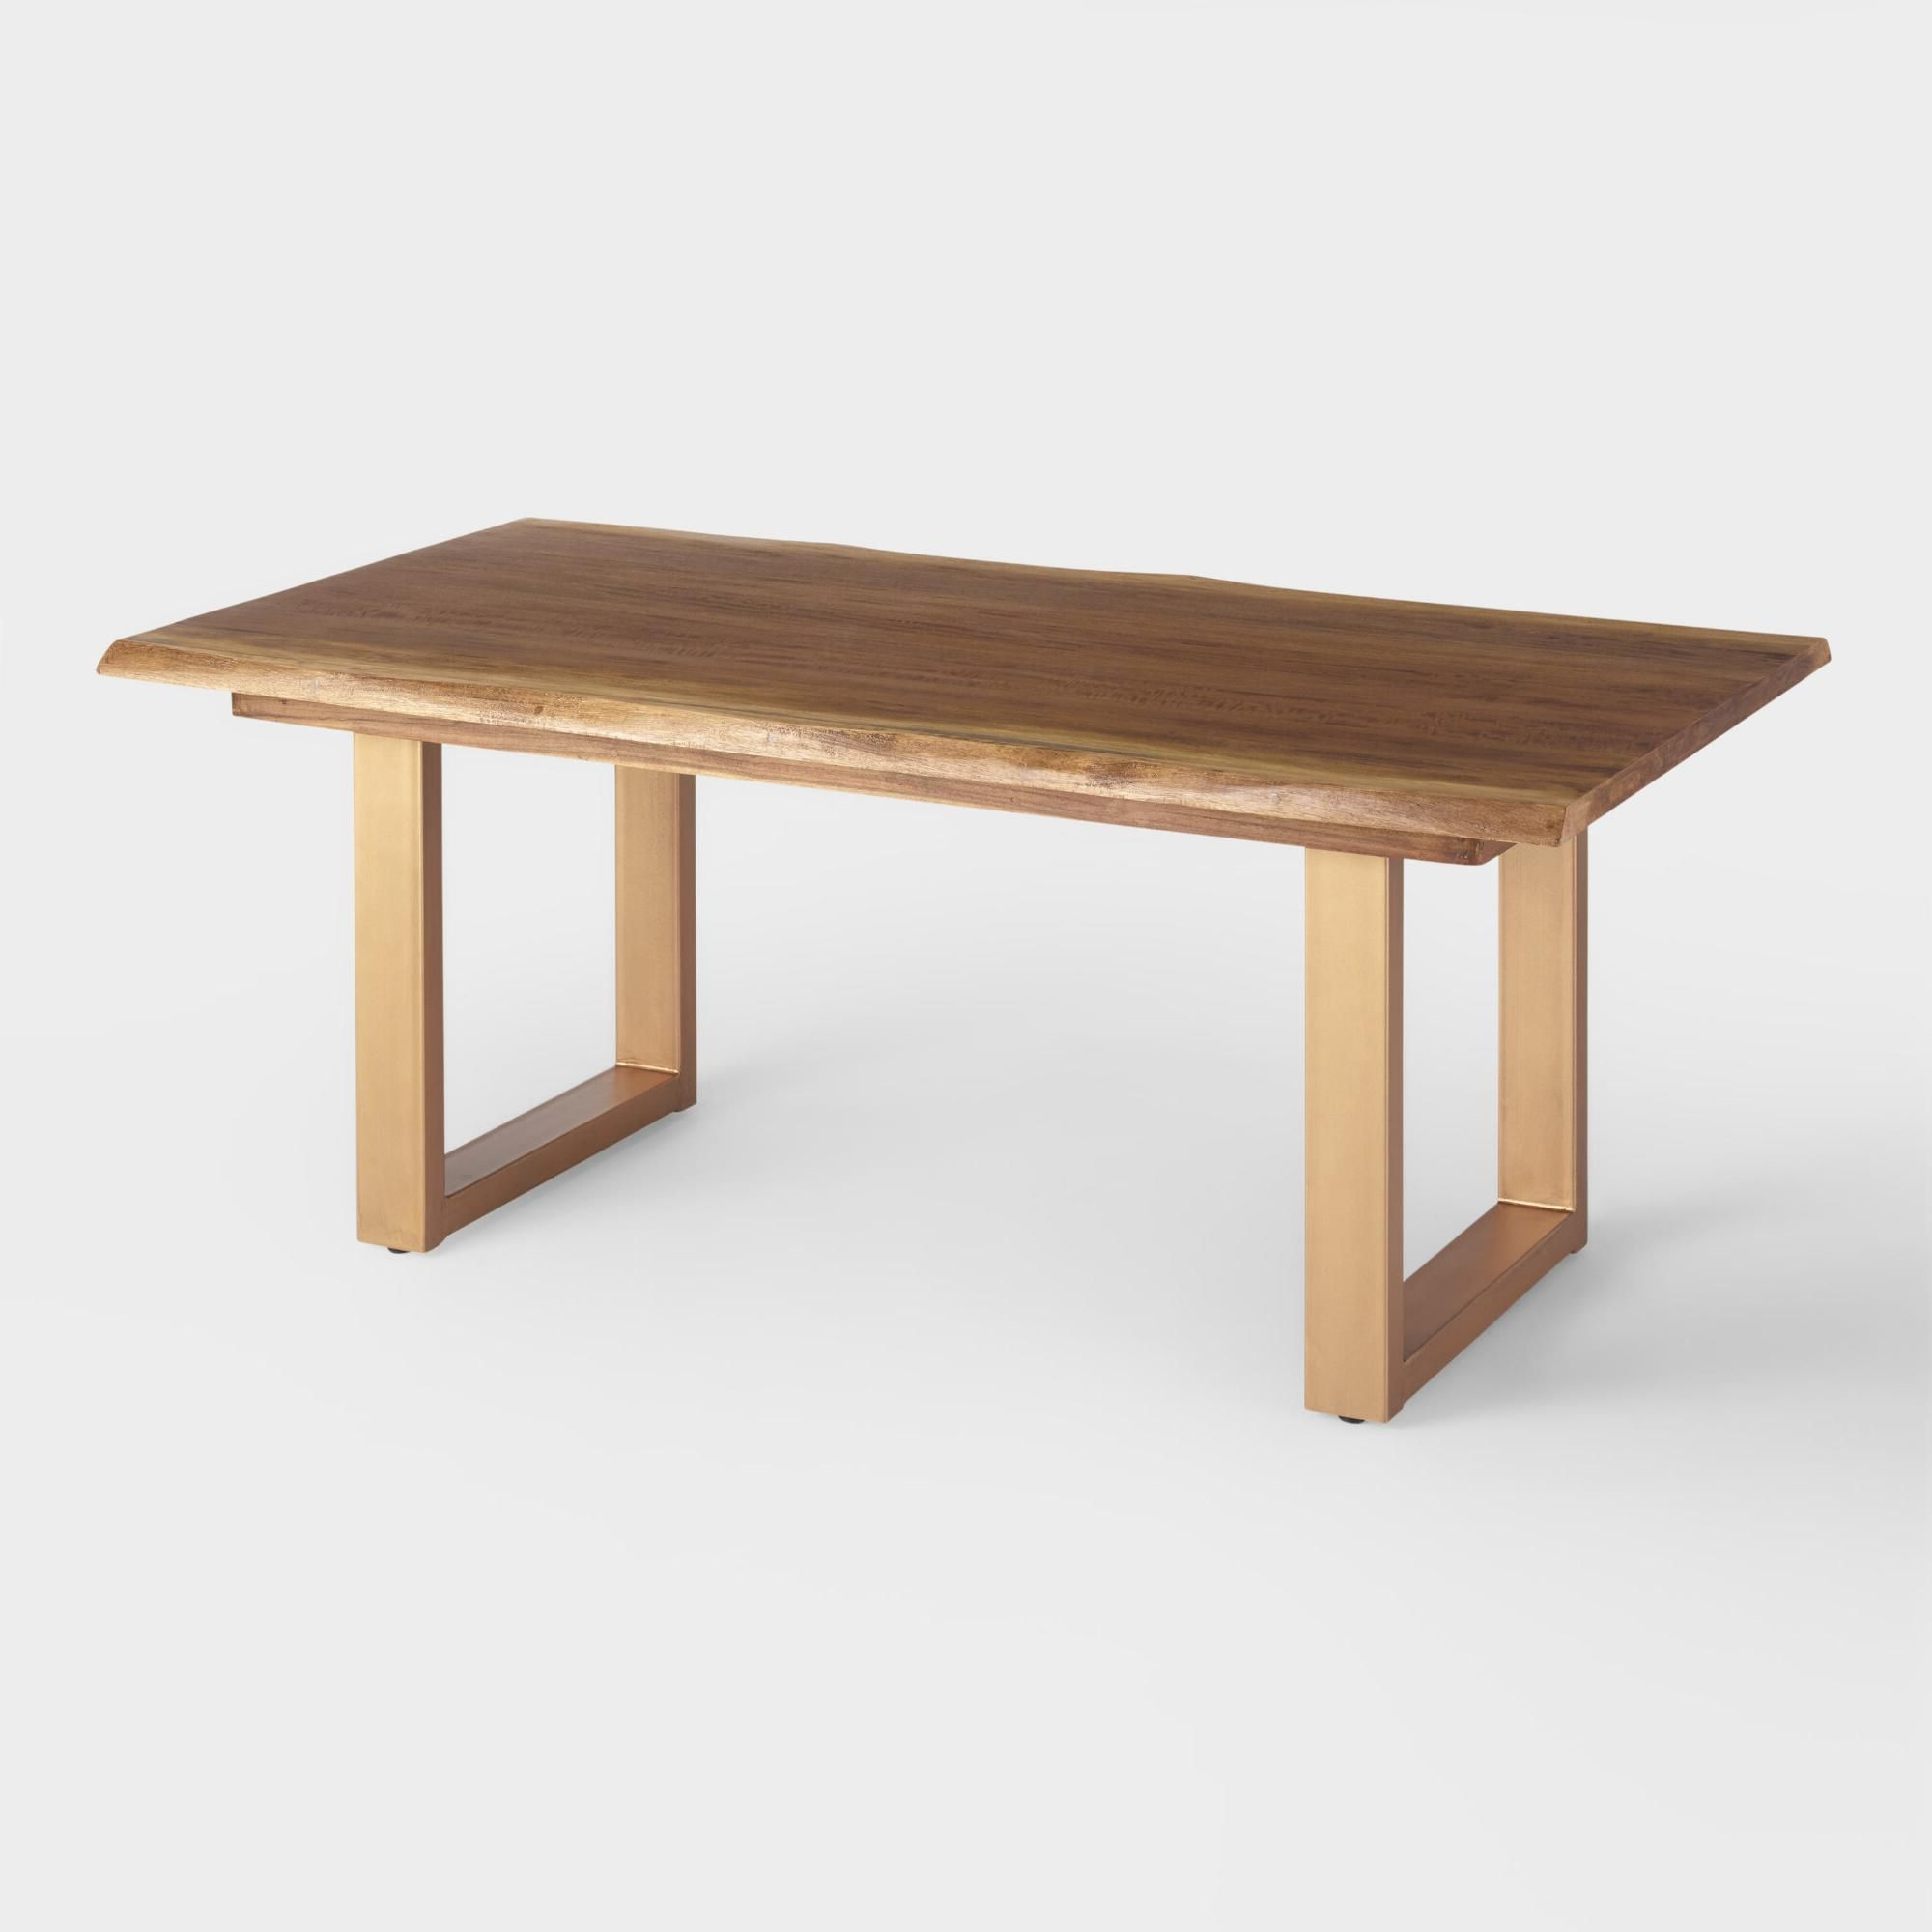 2019 Dining Tables In Smoked/seared Oak in With Its U-Shaped Matte Gold Base And Sleek Smoke Black